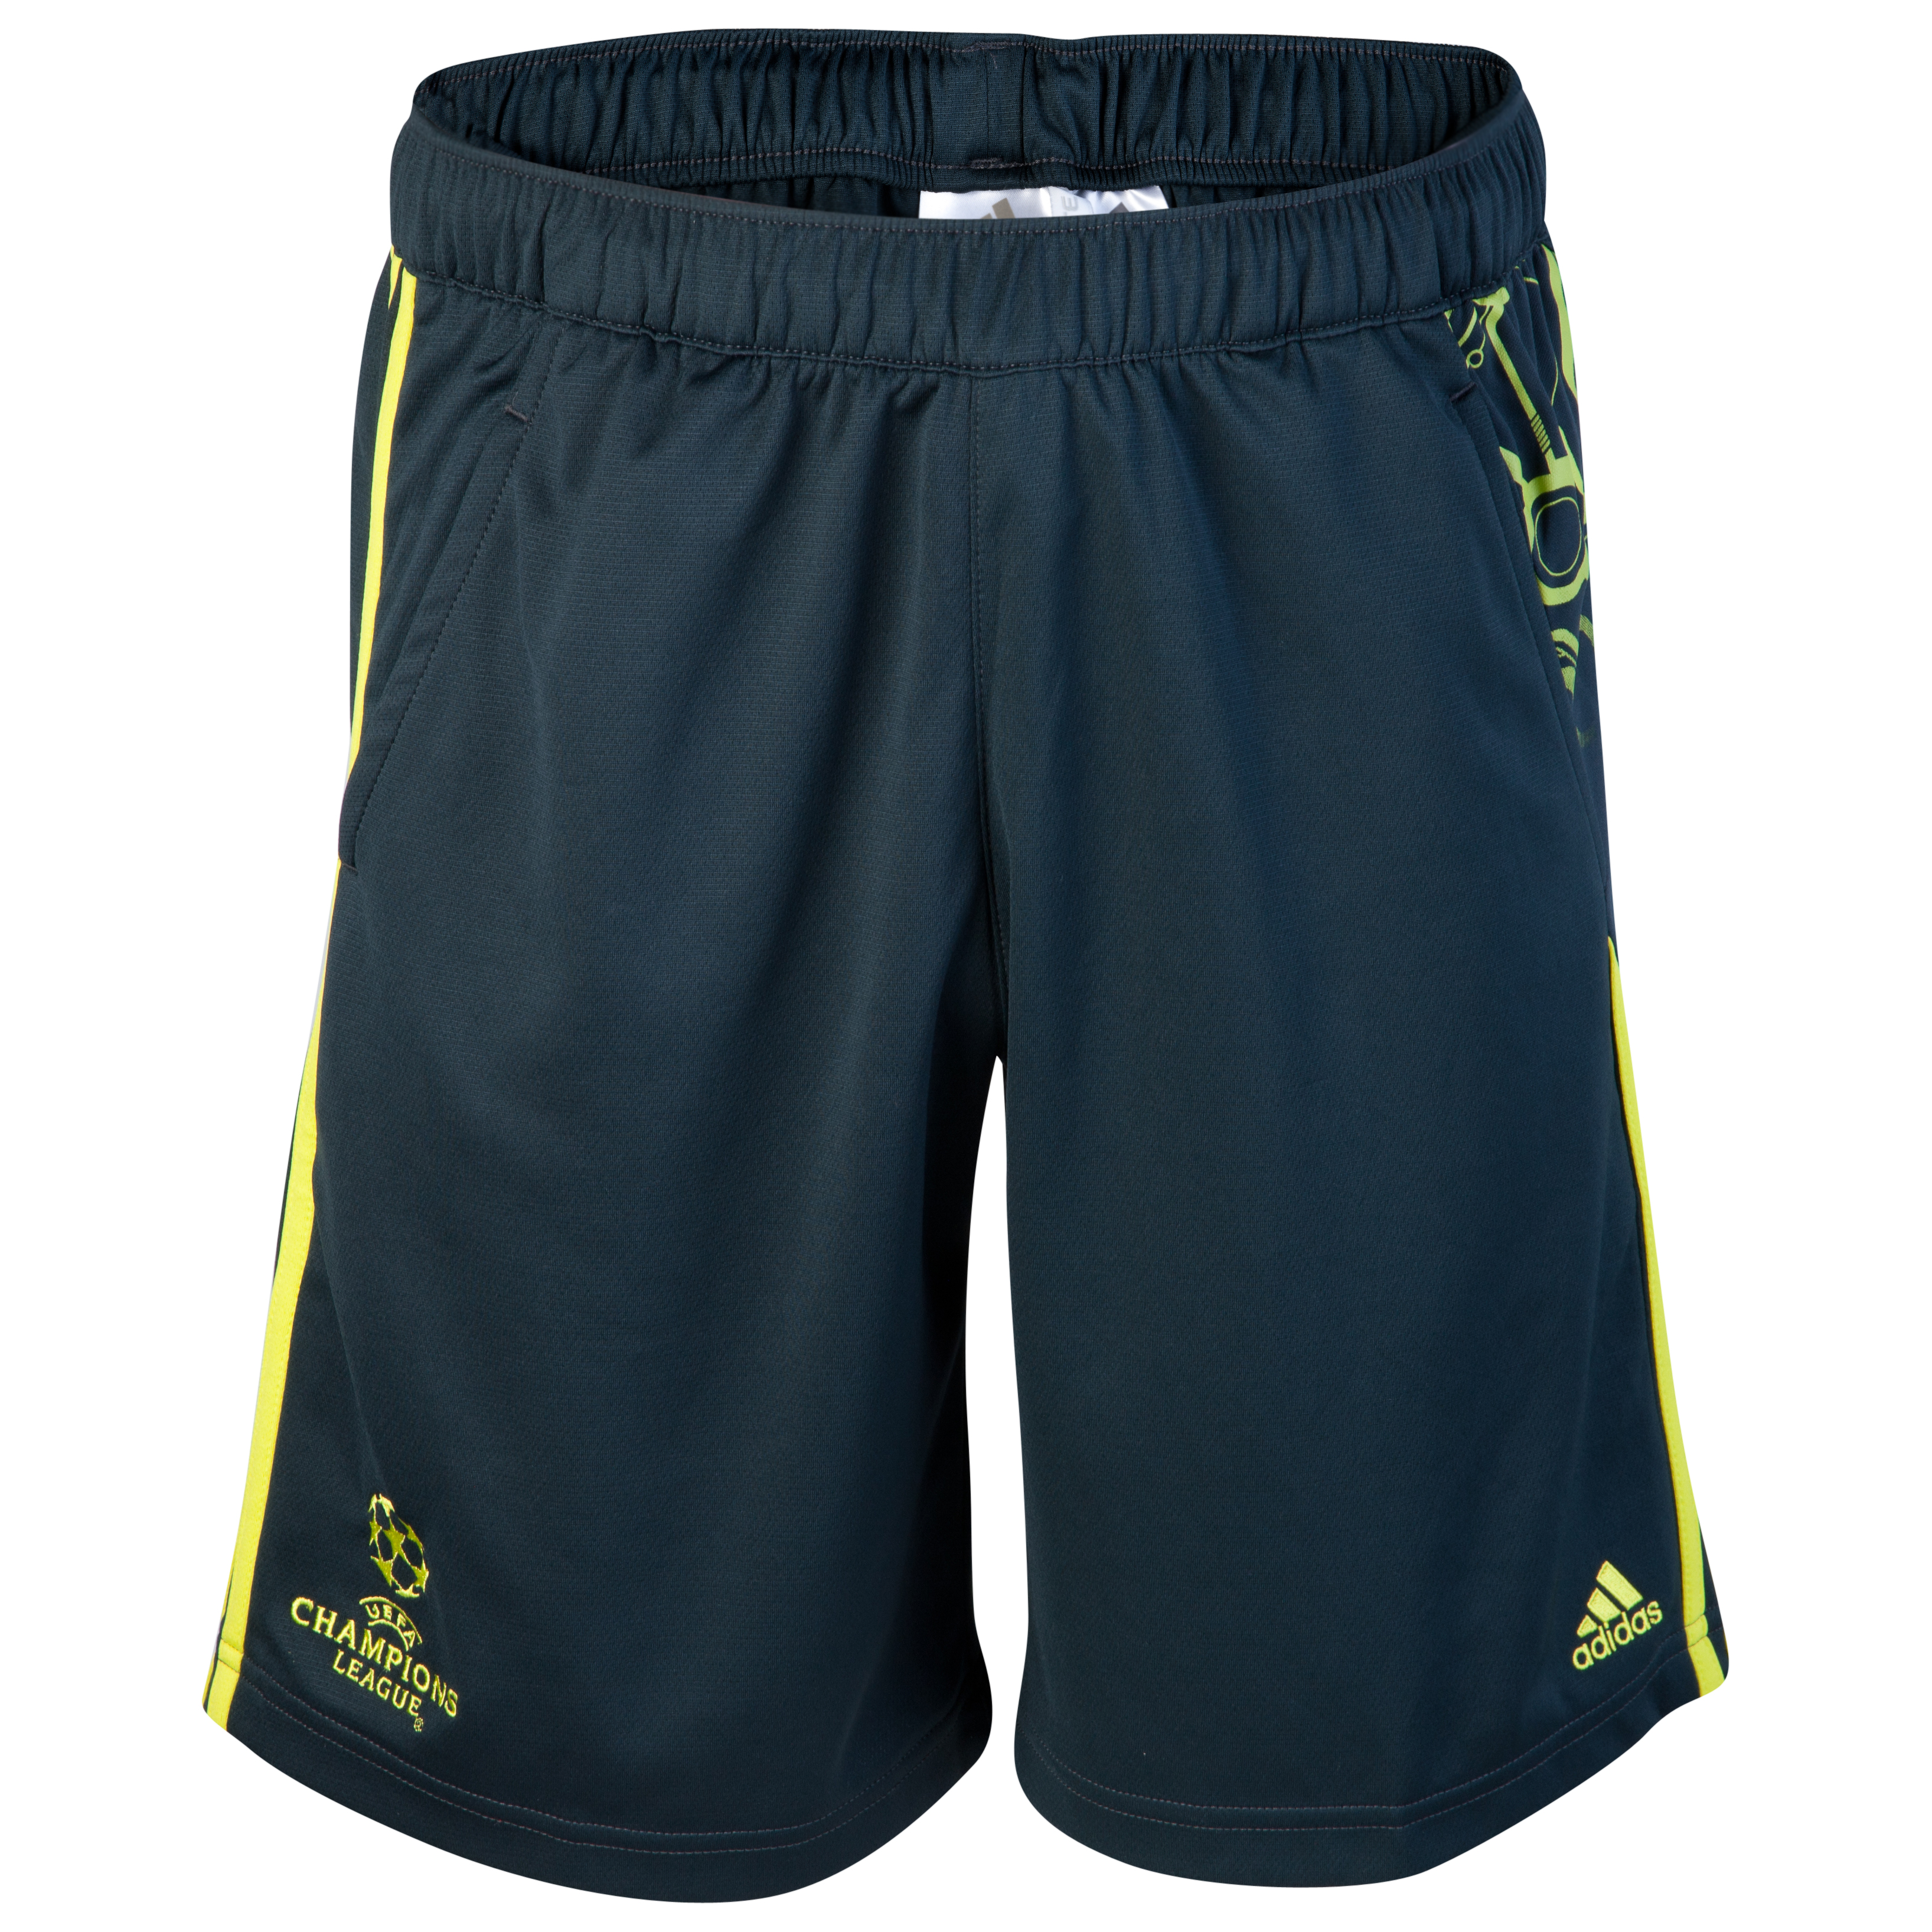 adidas Predator UEFA Champions League Training Short - Tech Onix/Lab Lime